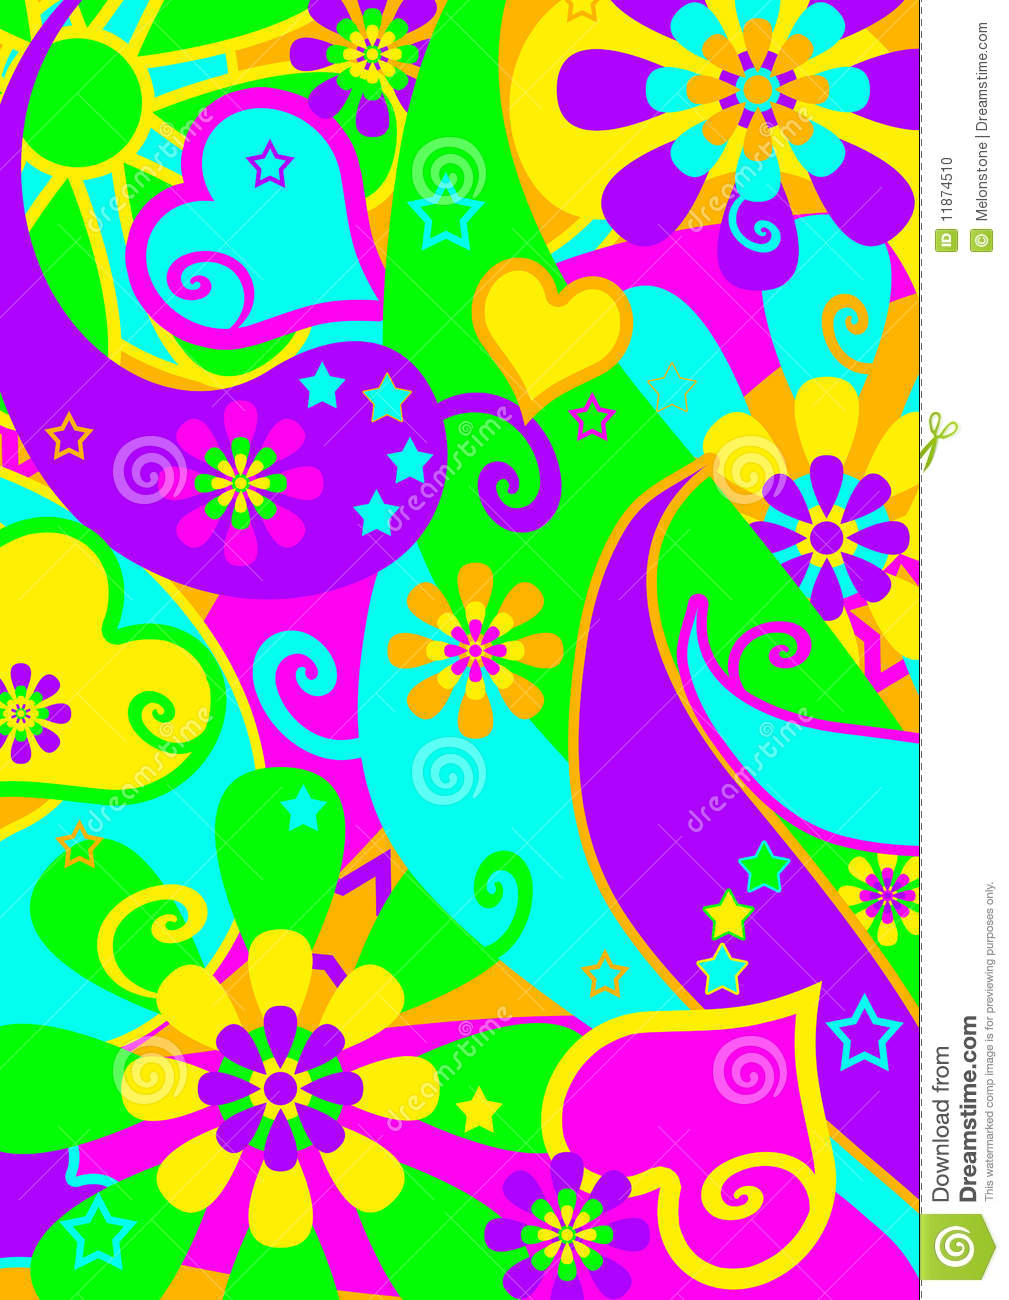 Funky Psychedelic Flower Power Pattern Illustration 11874510